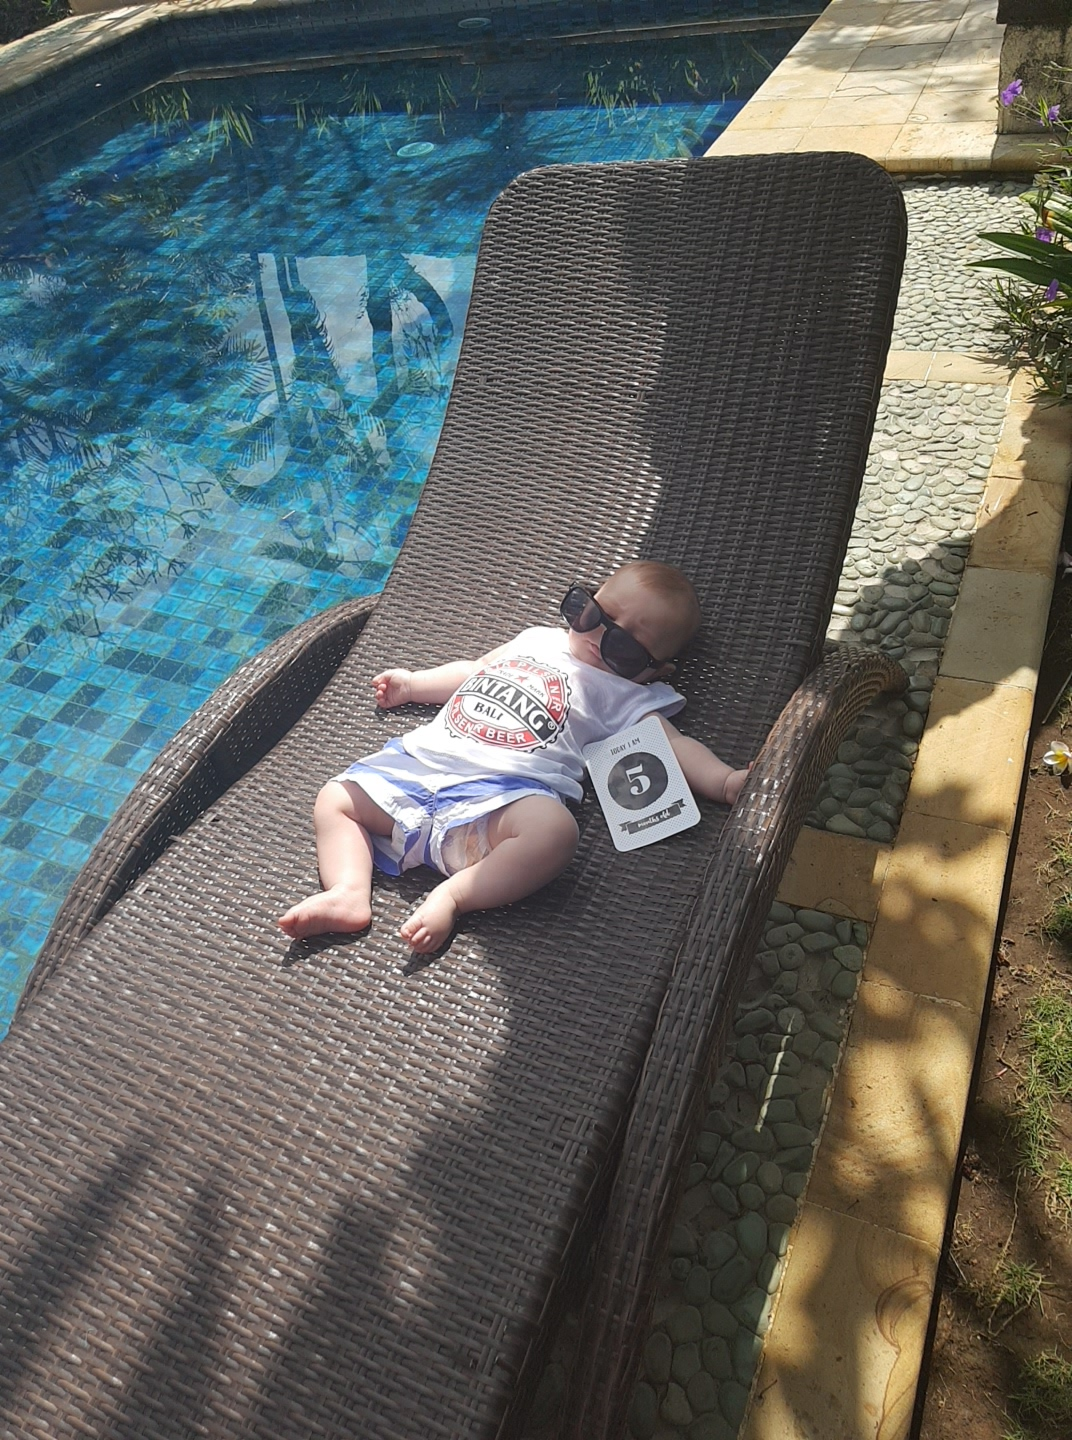 IMAGE 5 months today - it's hard work sinking milk bottles by the pool all day